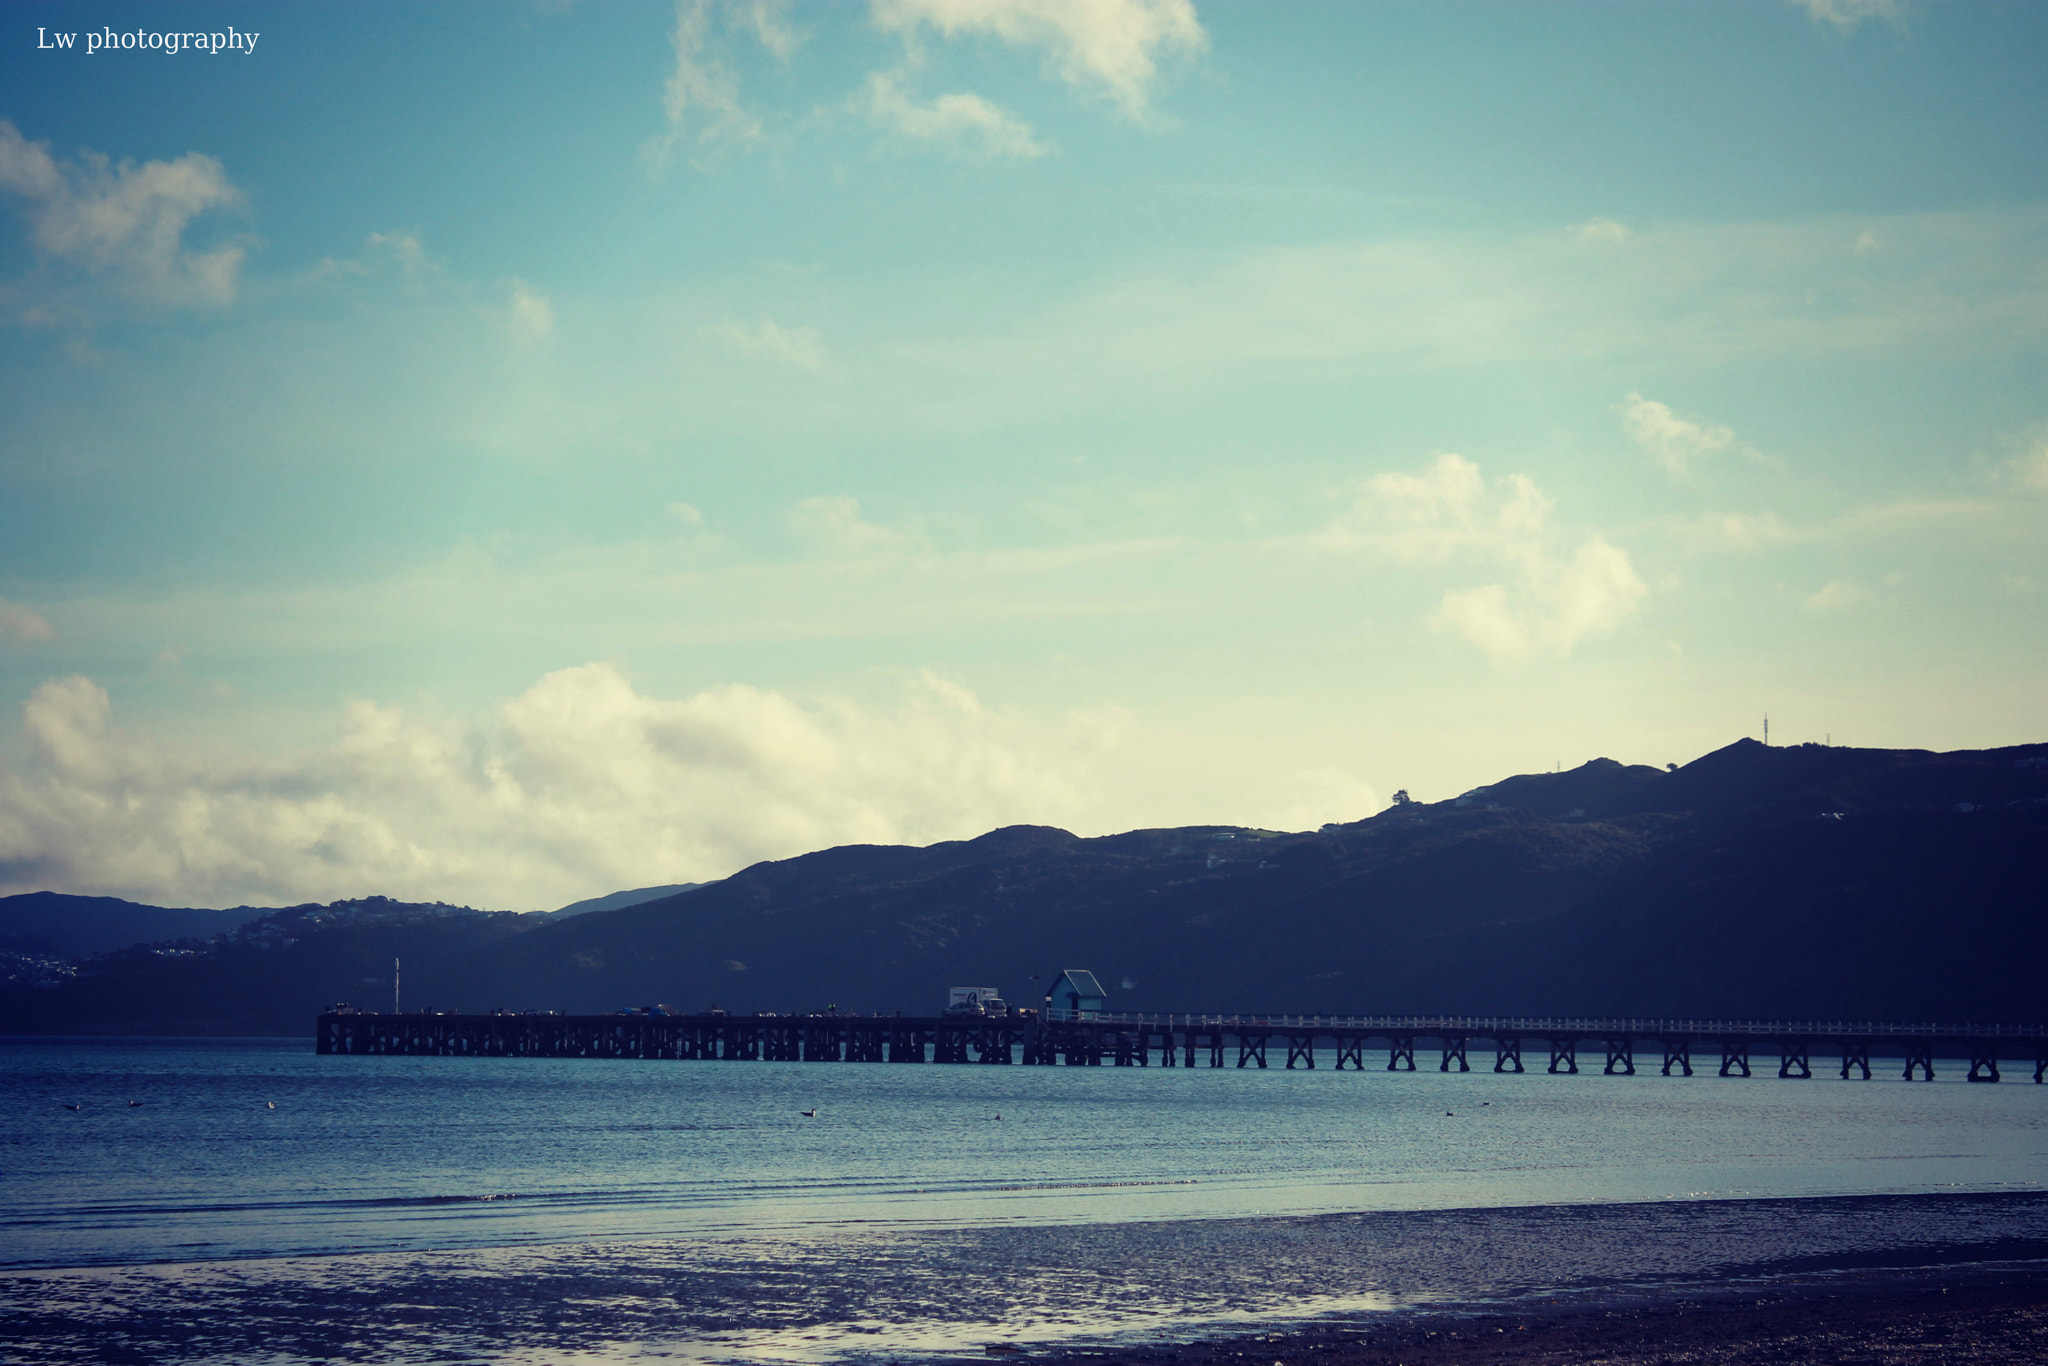 Photograph Petone Wharf by Lily Wright on 500px